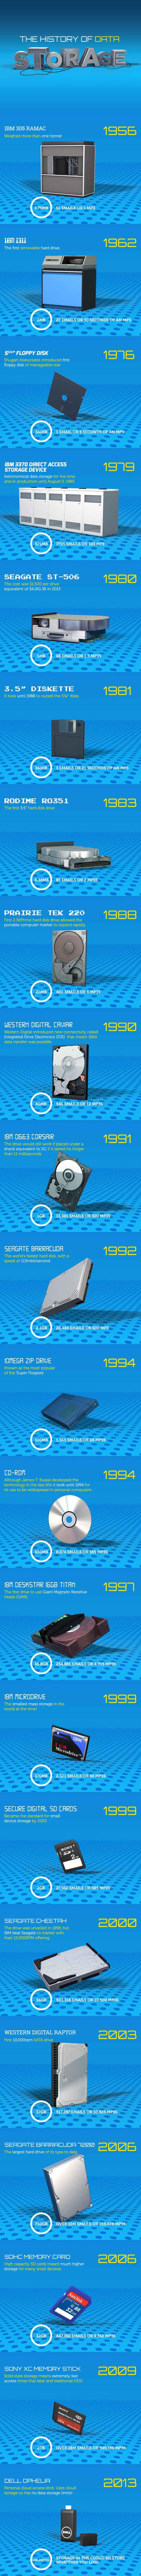 The History of Data Storage